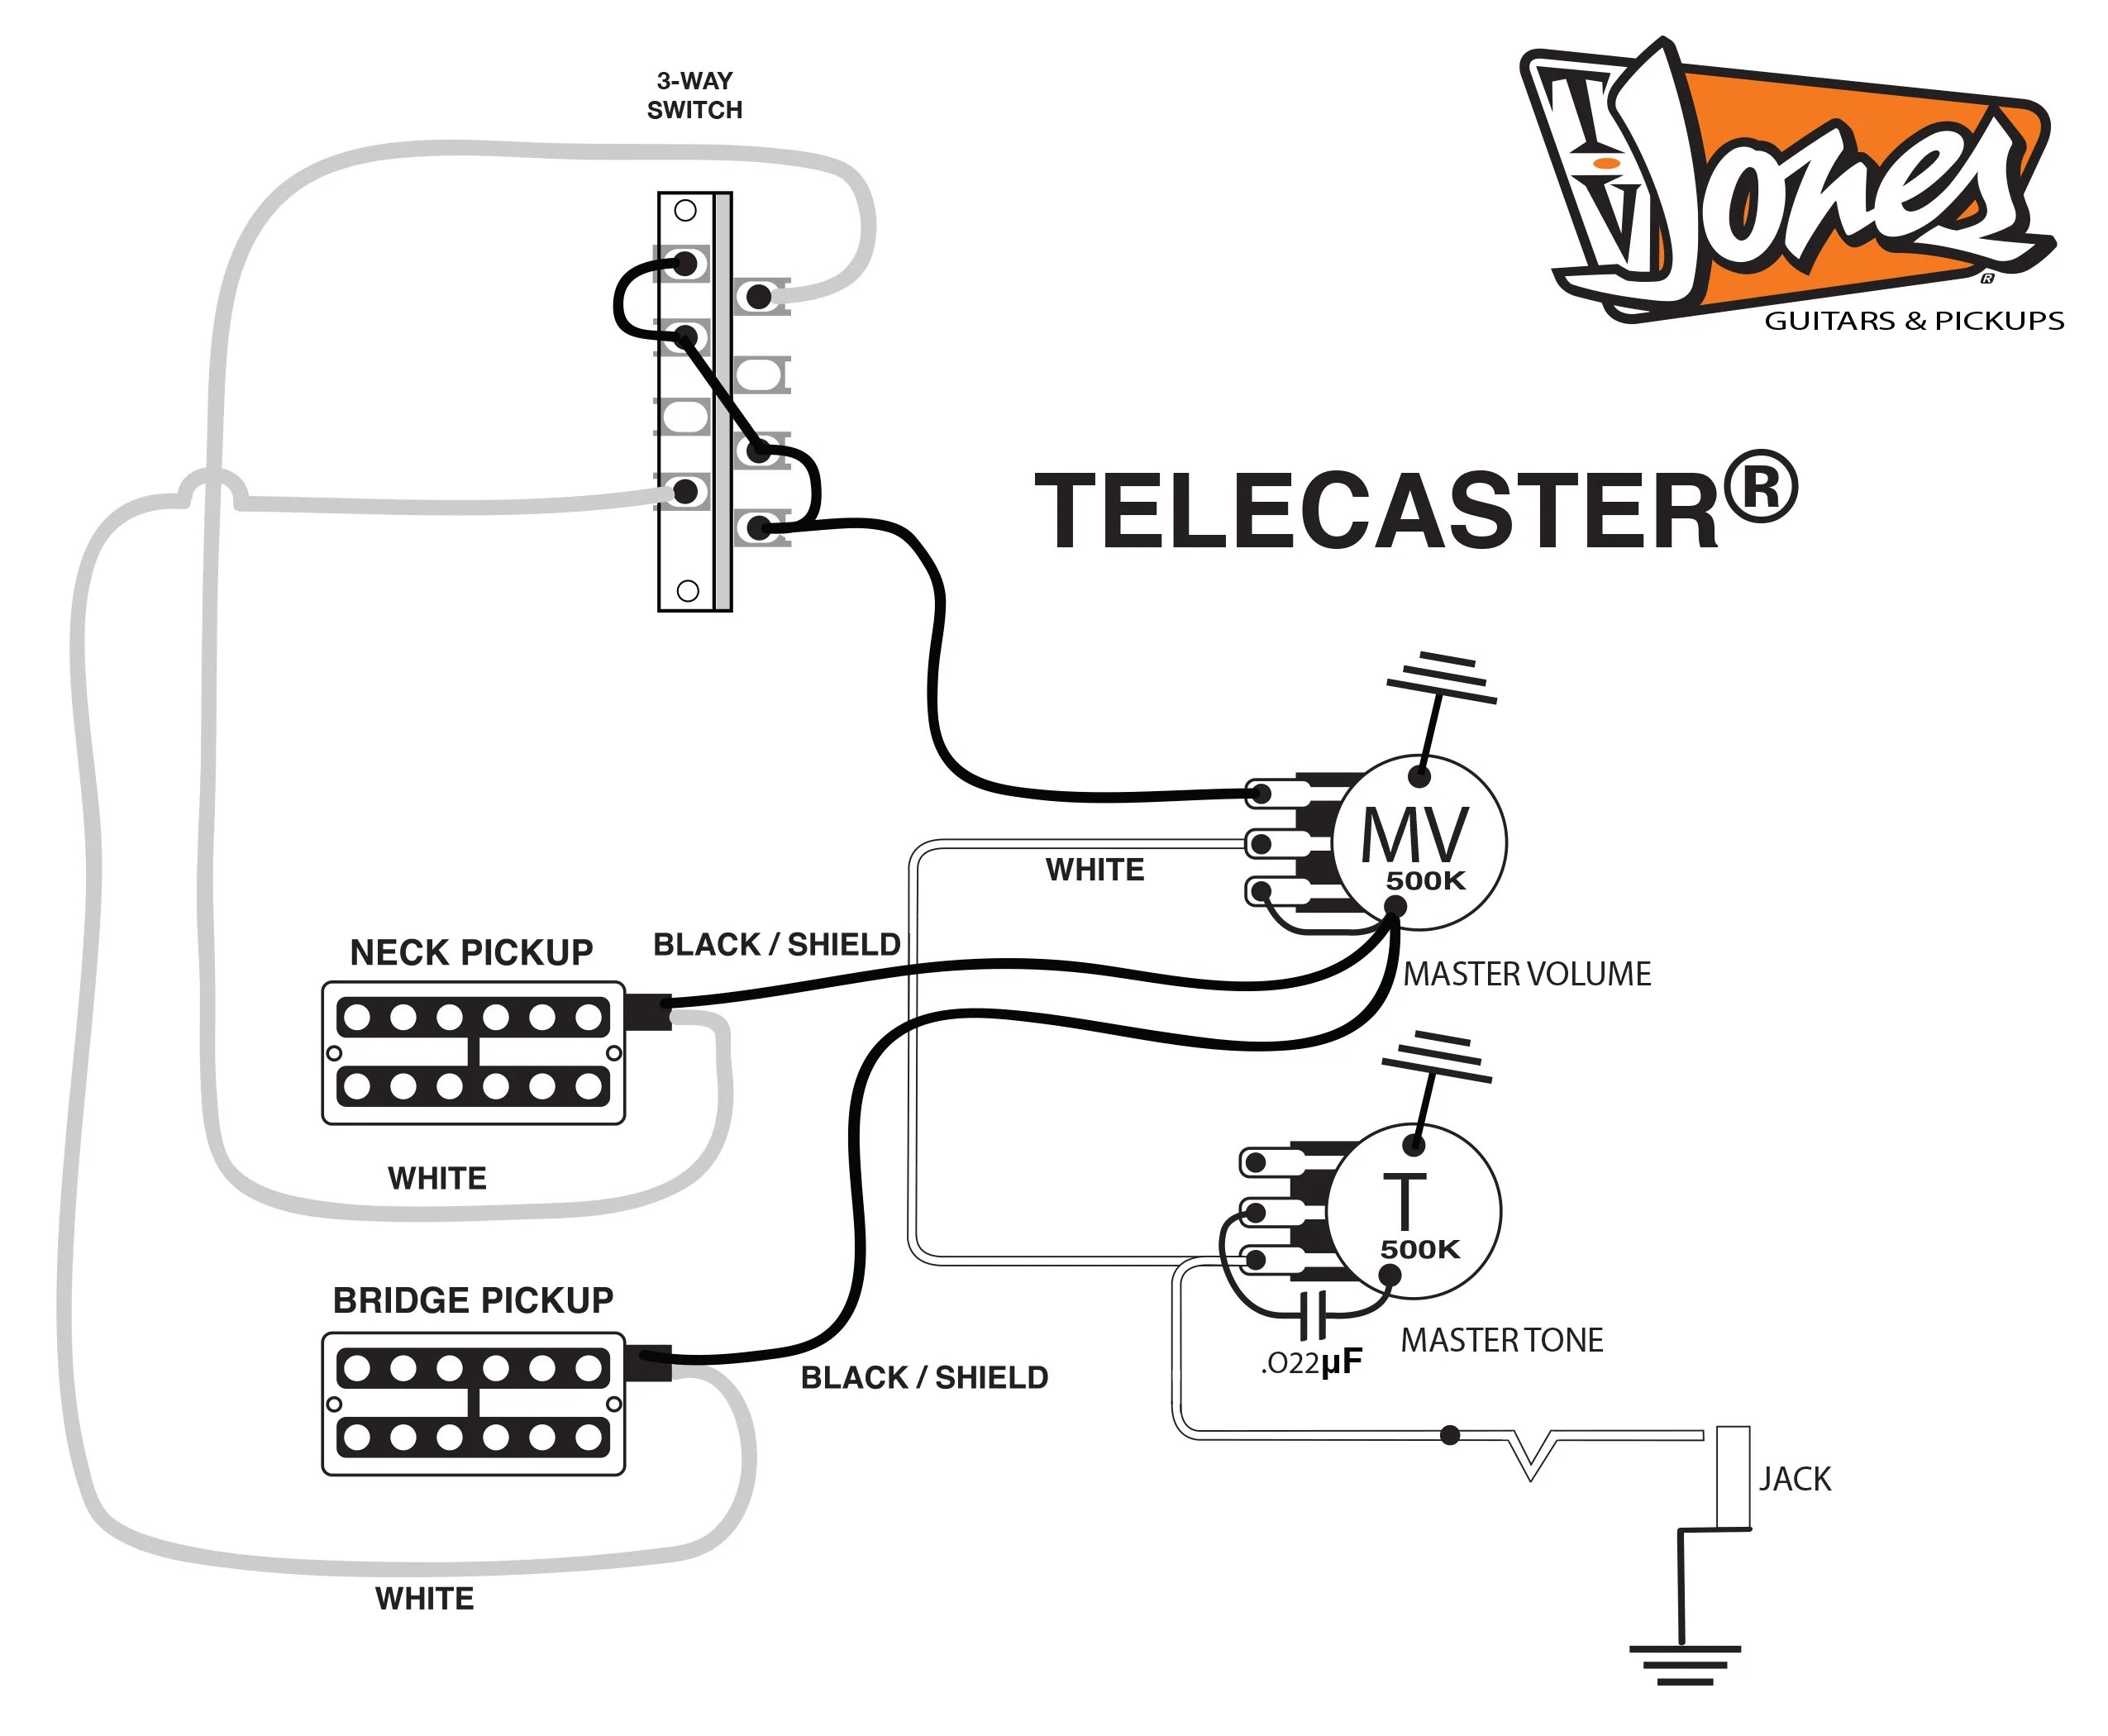 small resolution of tv jones wiring diagram